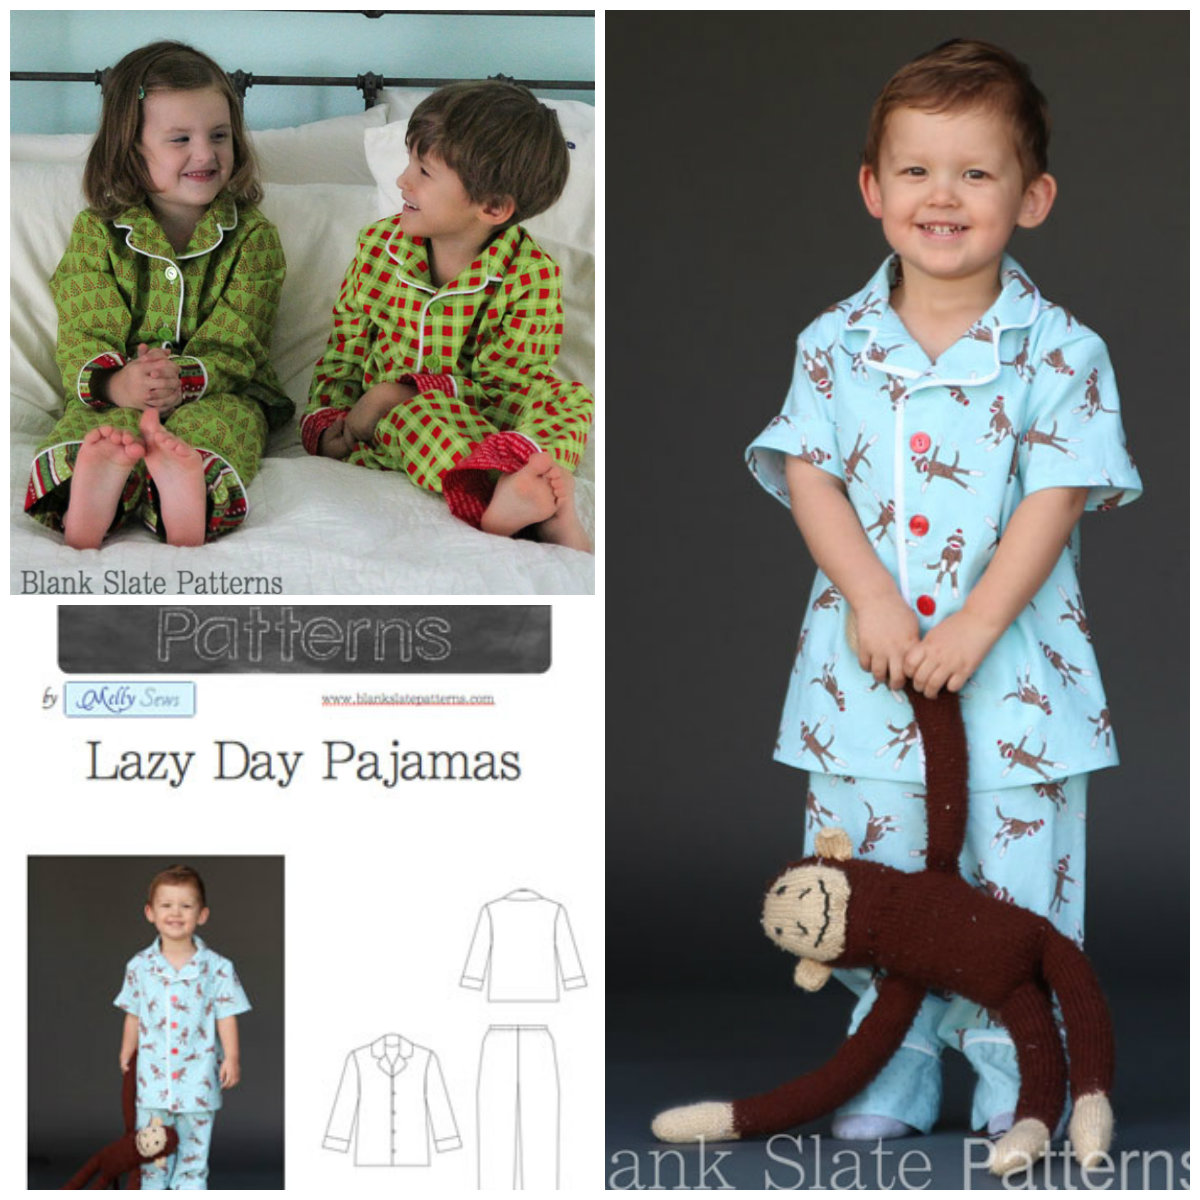 Blank Slate Child's Pajamas Downloadable Pattern Lazy Day Pajamas